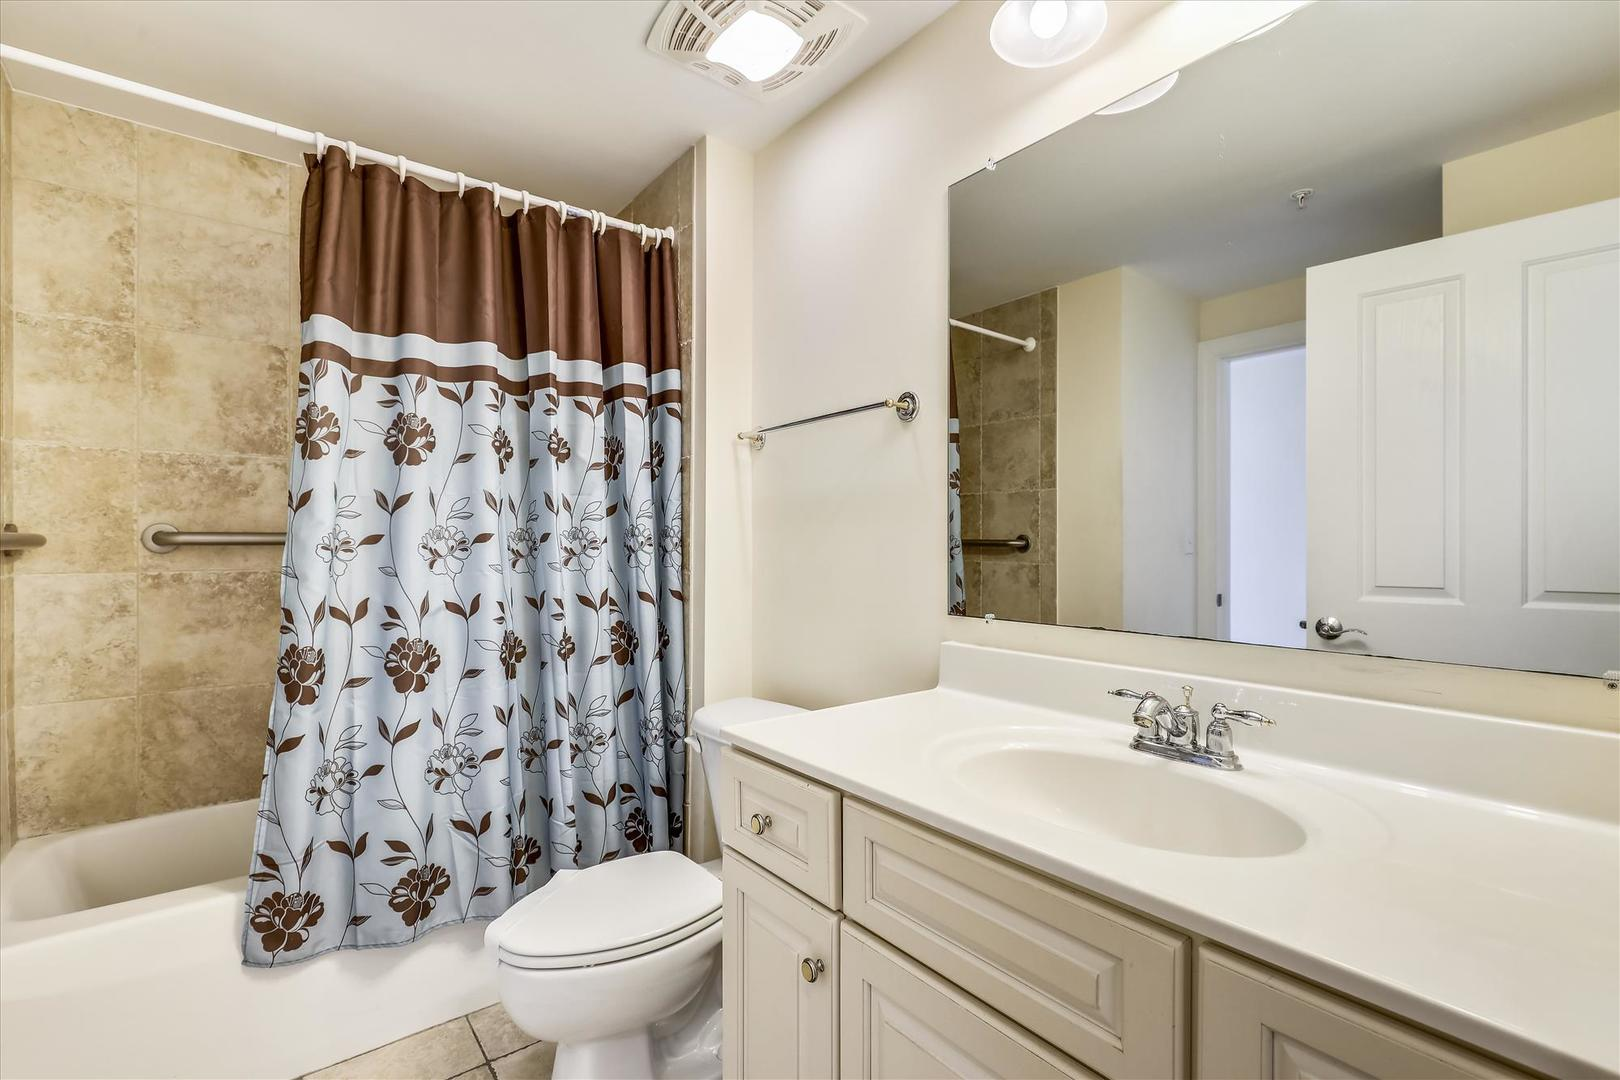 Belmont Towers 608 - Bathroom 2